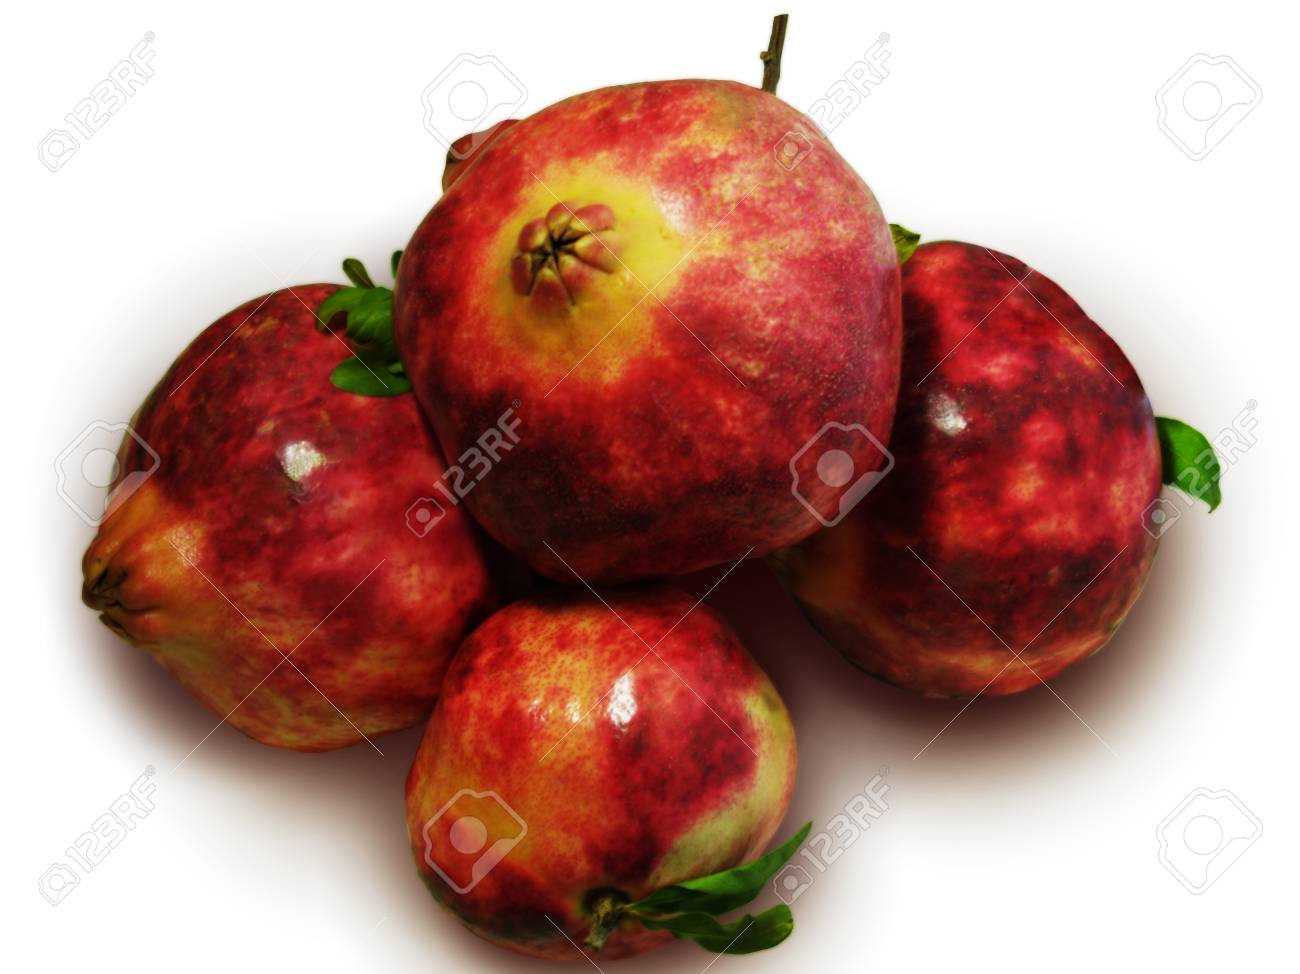 Pomegranates/Big red pomegranates isolated on white Stock Photo - 17922972